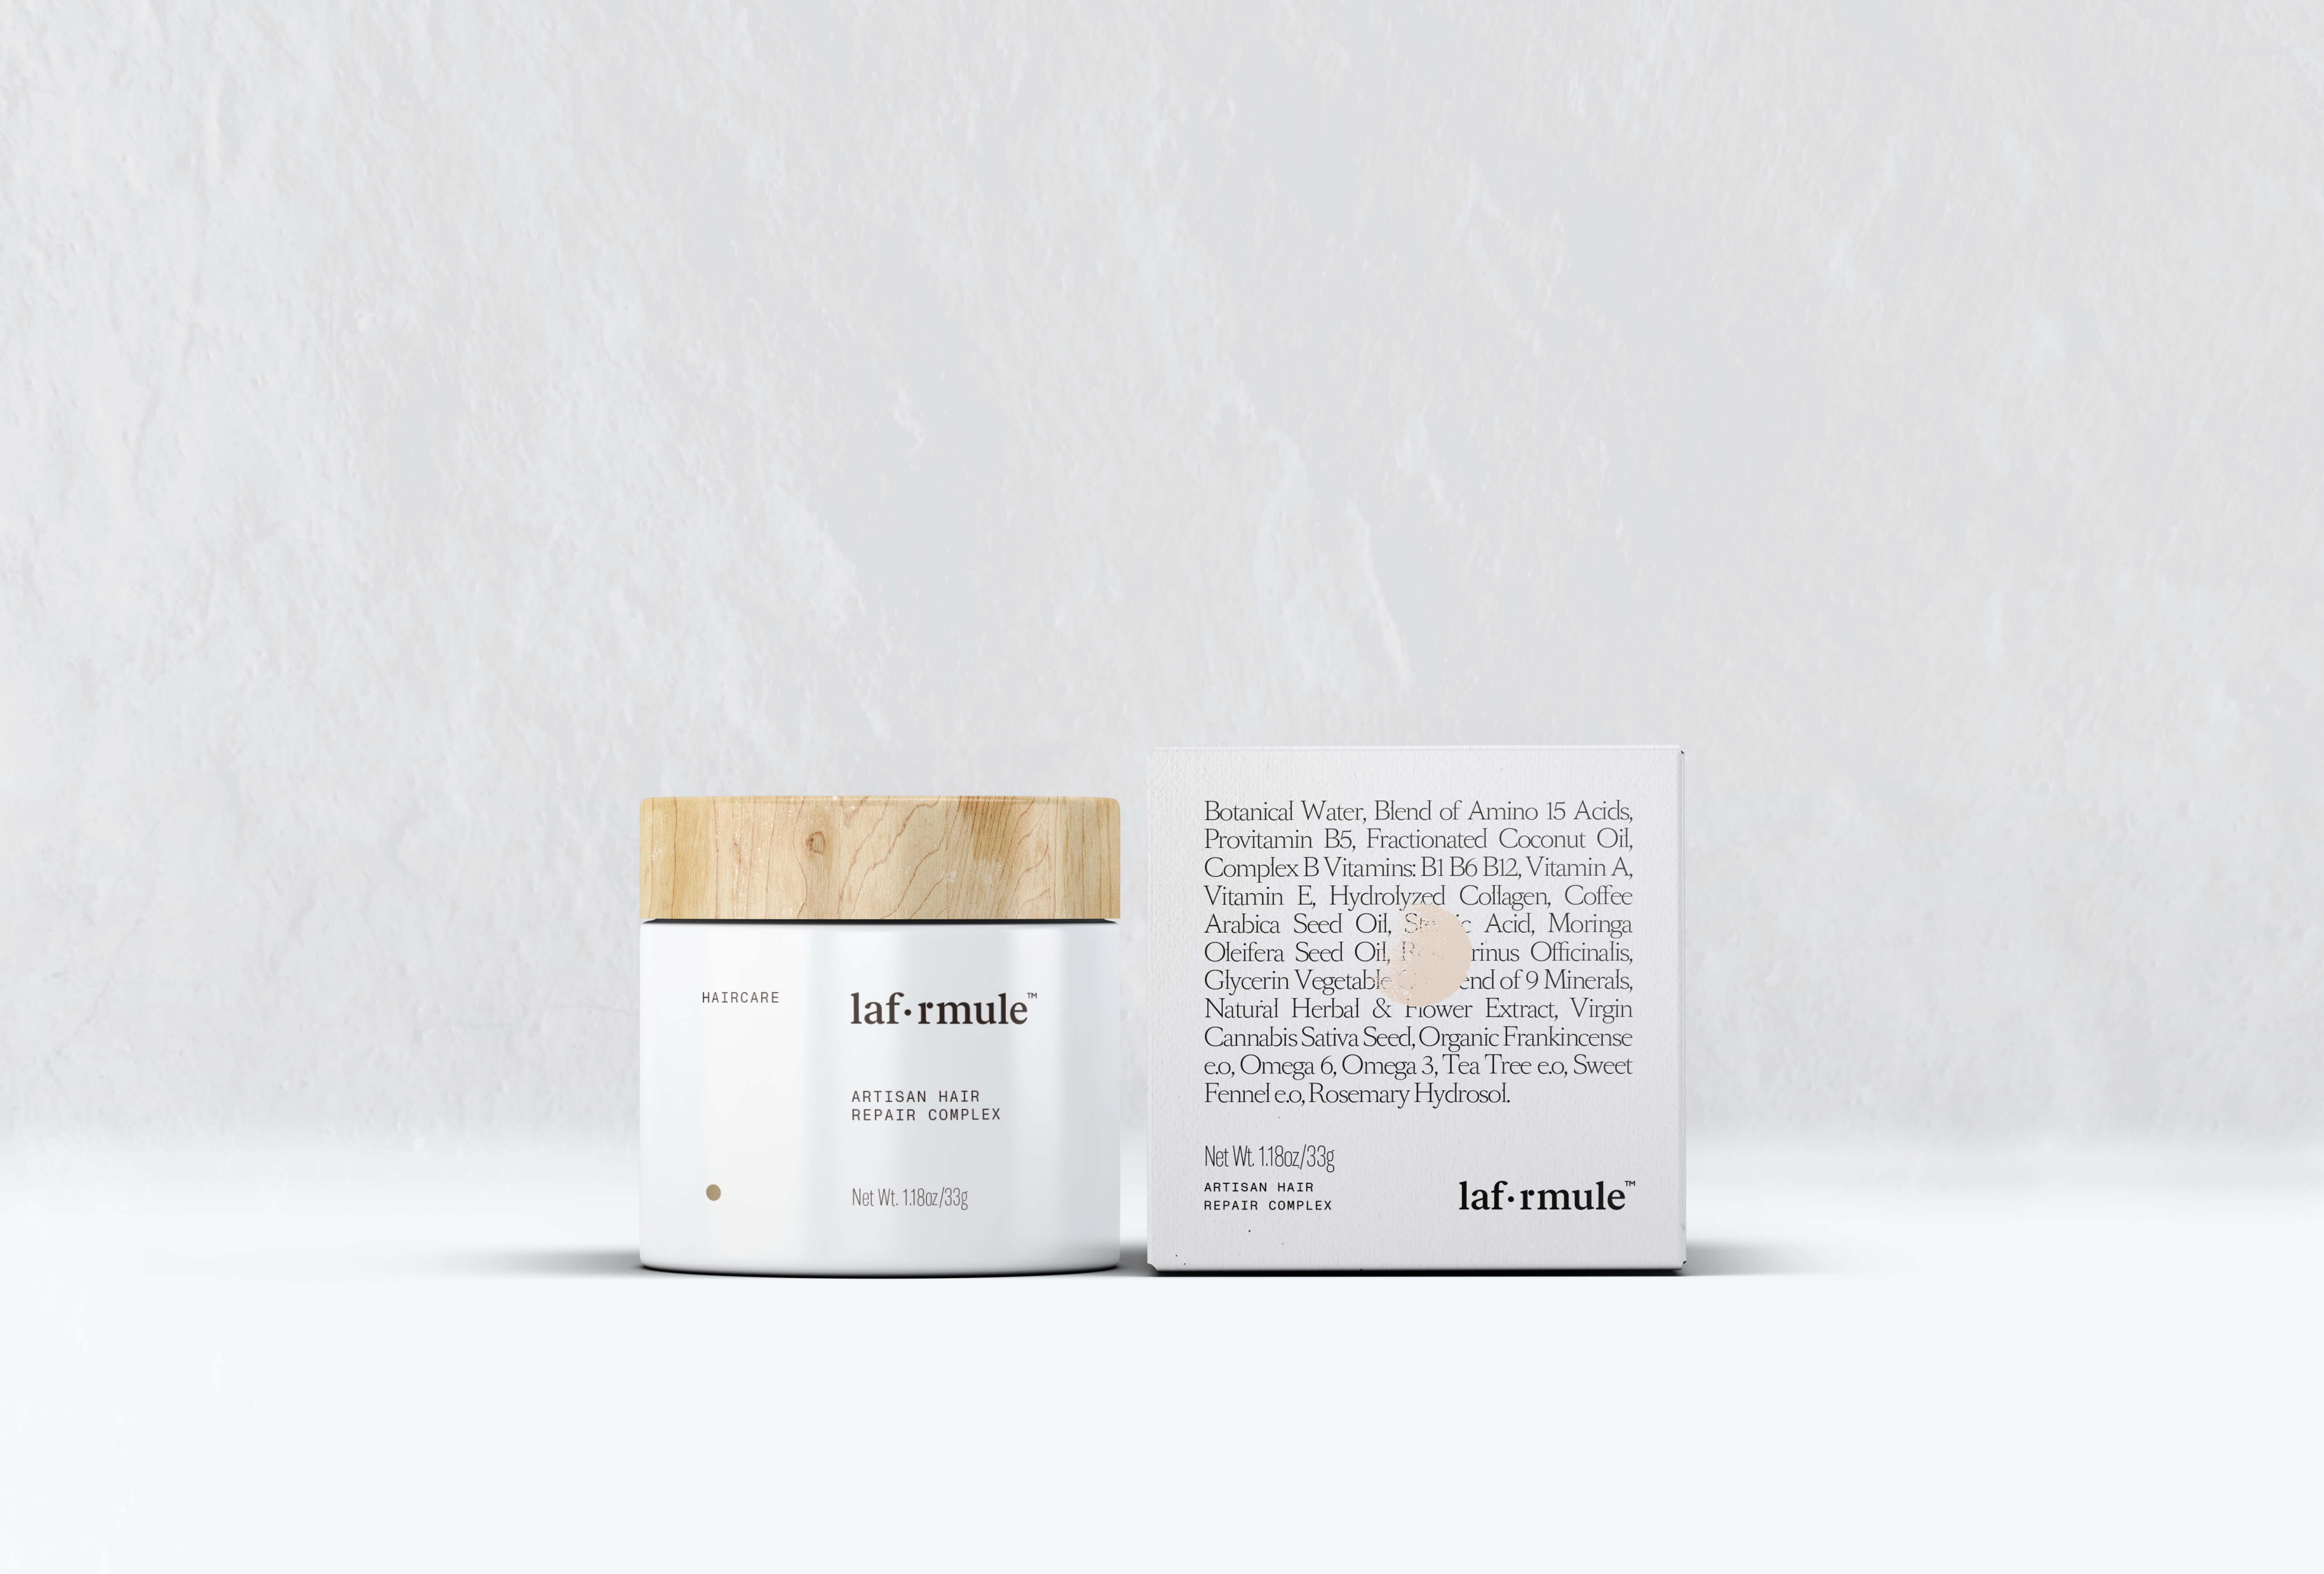 Brand & Packaging design for La Formule, a revolutionary hair product